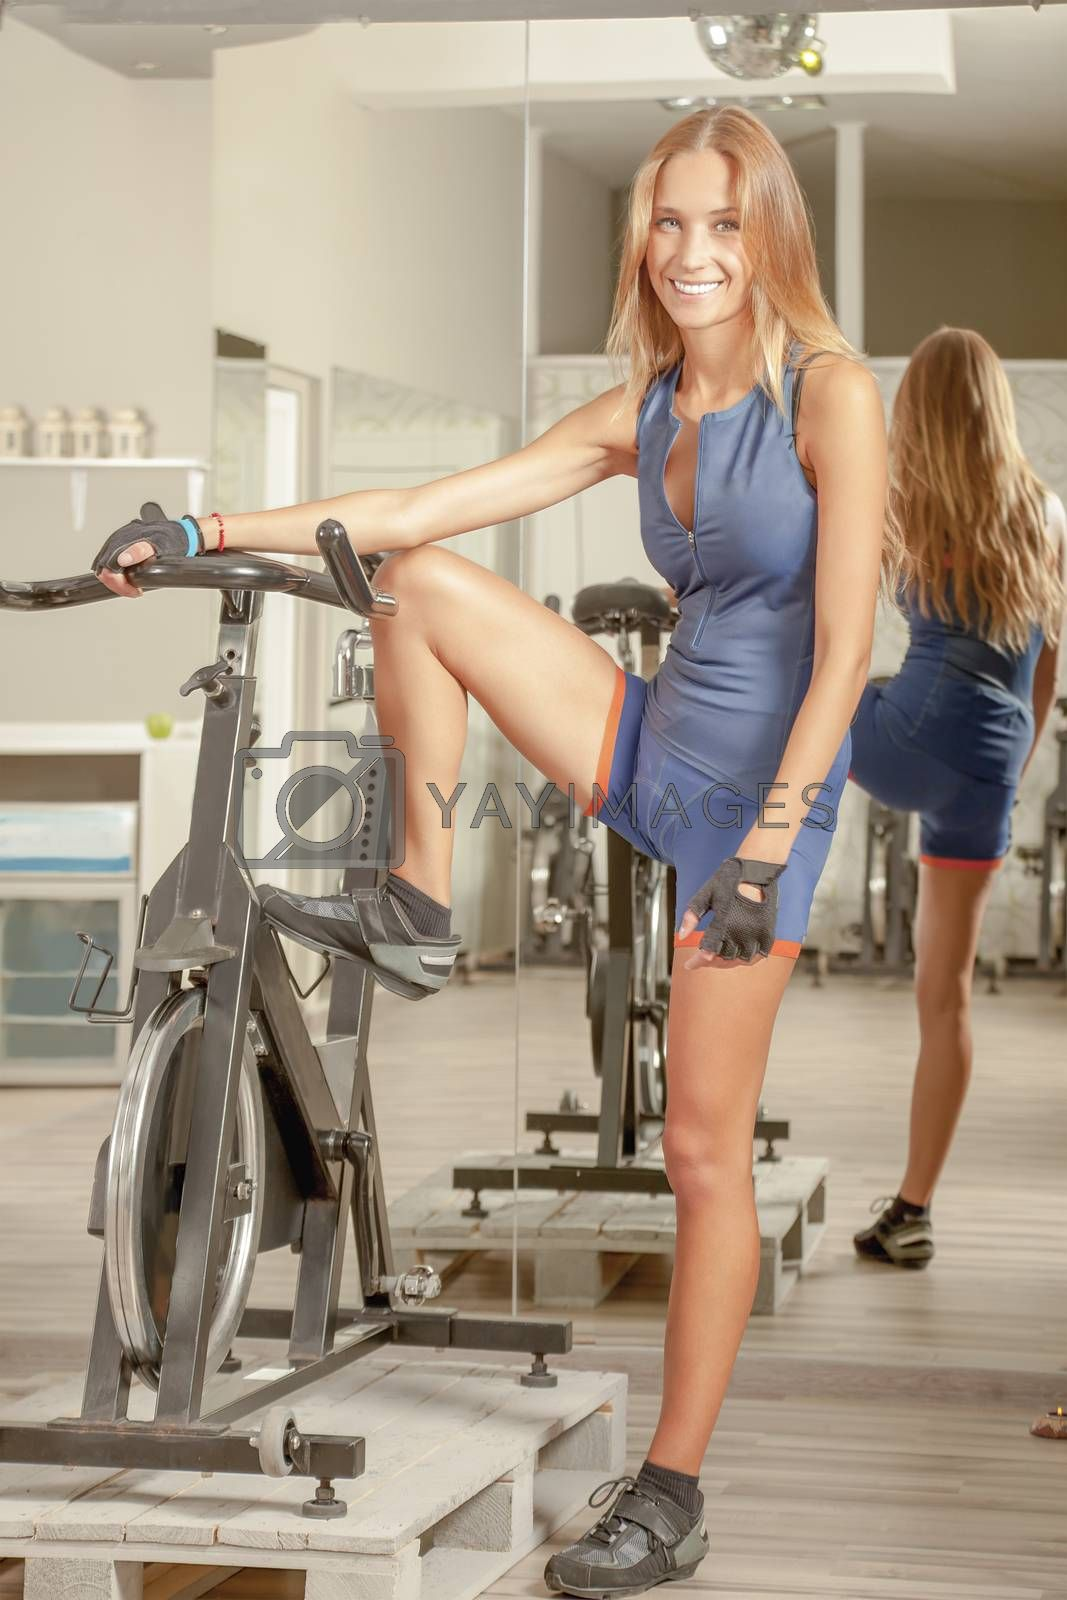 Royalty free image of Beautiful Young Woman Cycling Gym by vilevi